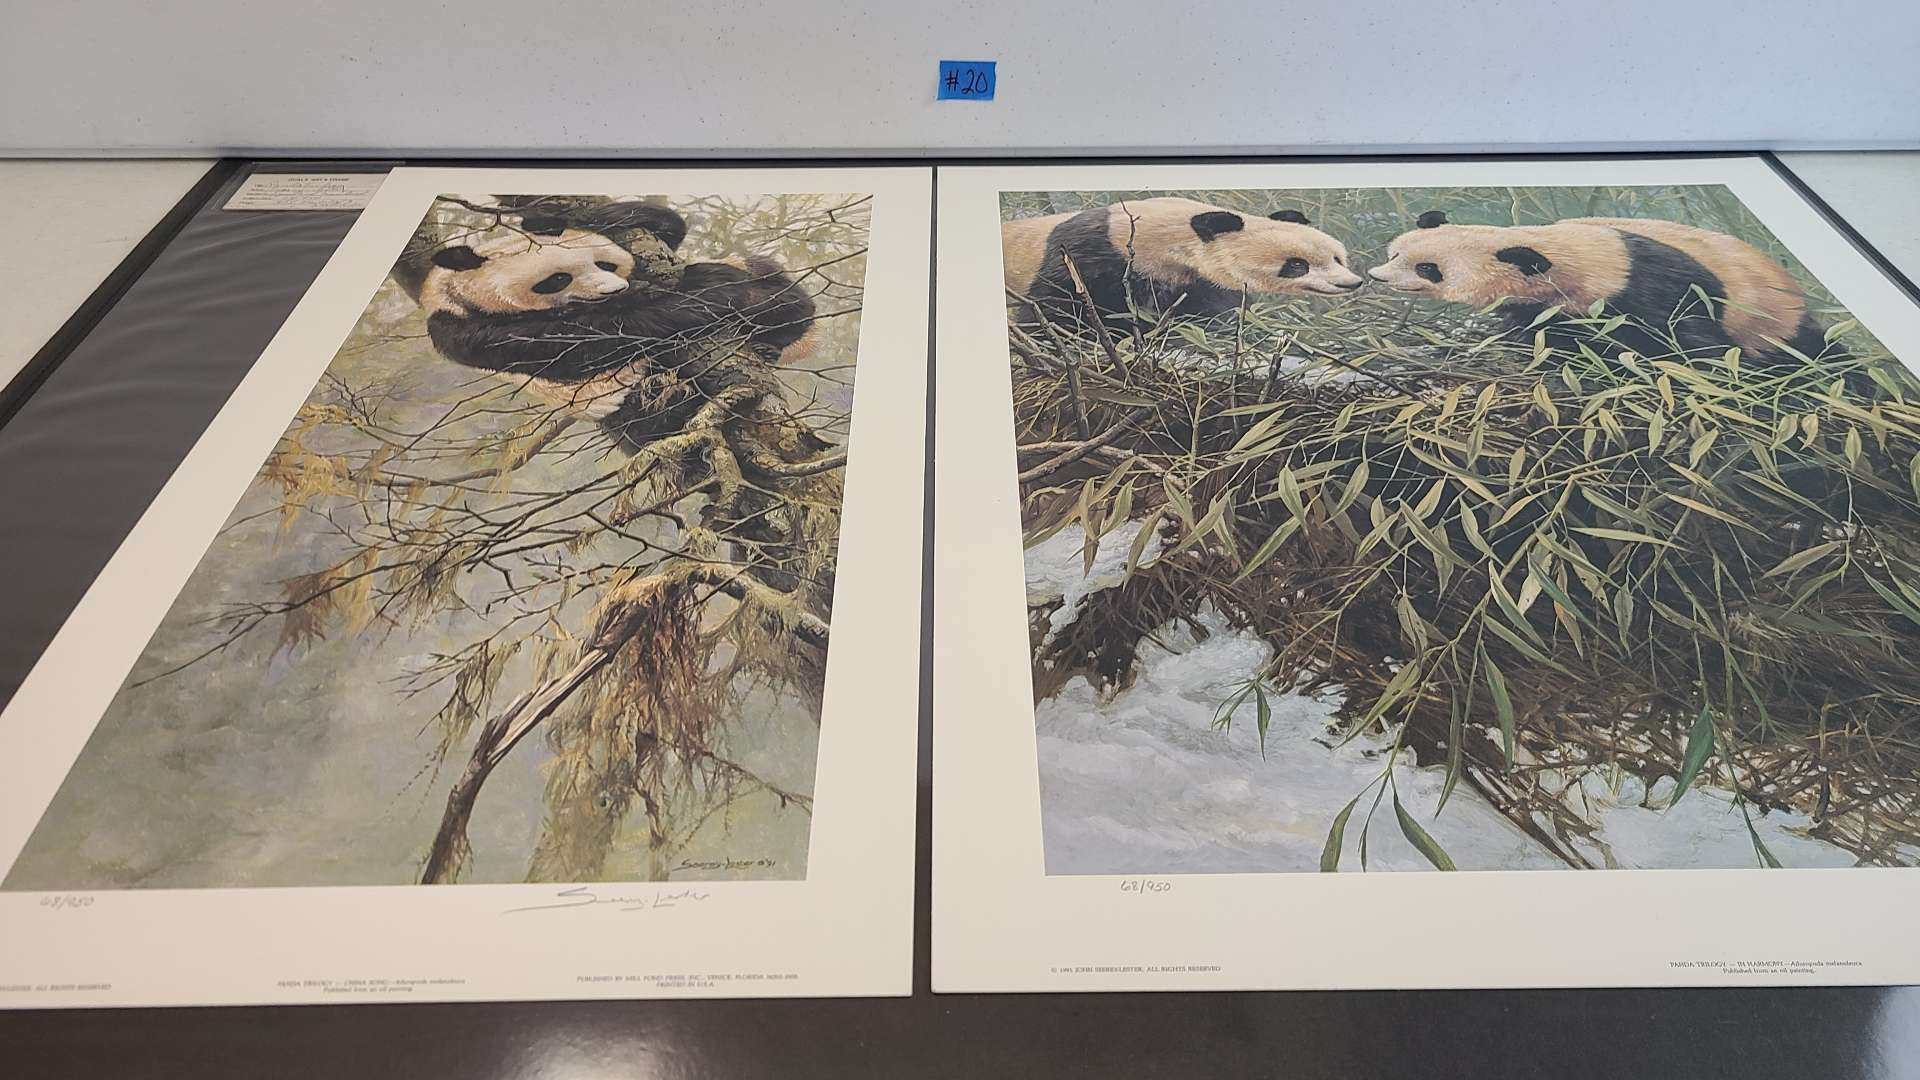 """Lot # 20 Beautiful """"Panda Trilogy-In Harmony"""" By John Seerey-Lester Signed & Numbered W/ Certificate of Authenticity"""